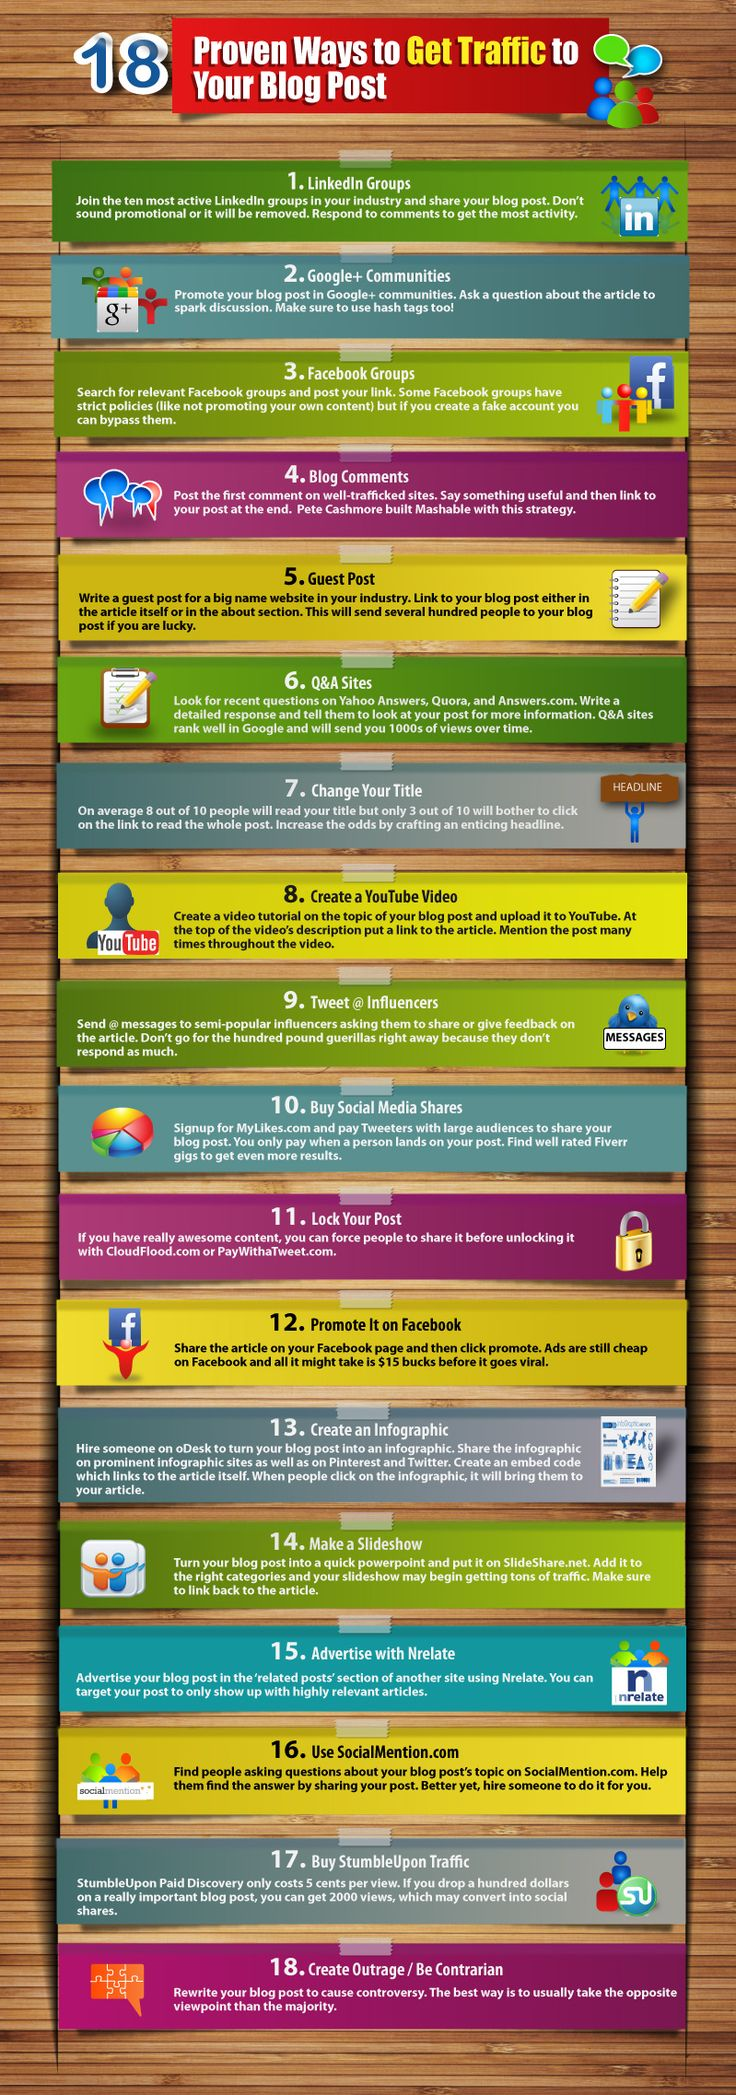 18 Proven Ways to Get Traffic to Your Blog Posst